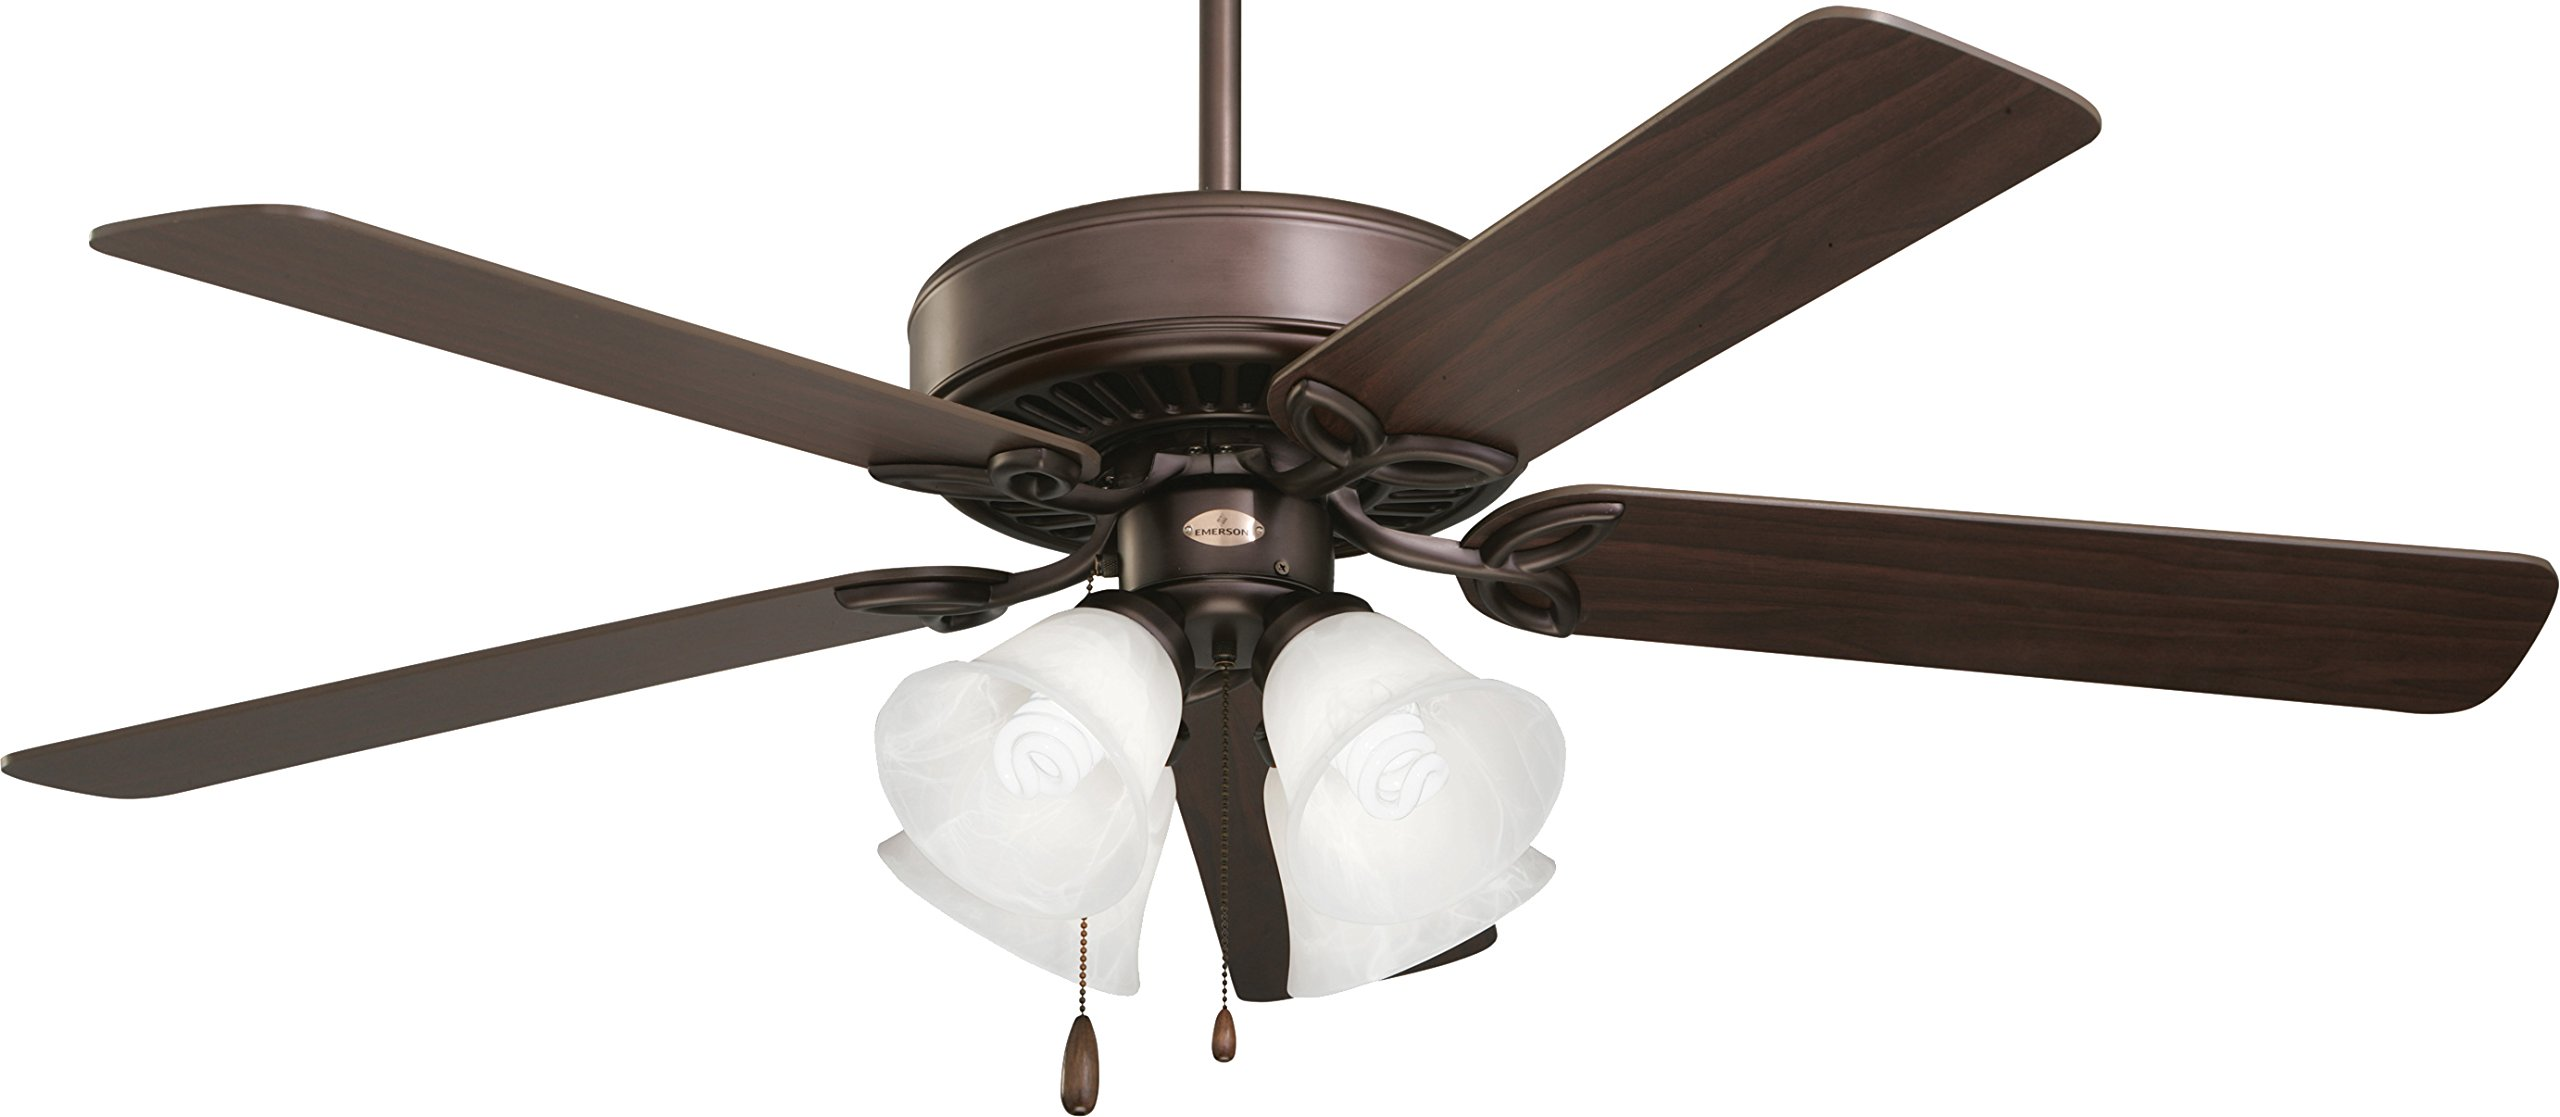 Emerson CF711ORB, Pro Series II Oil-Rubbed Bronze 50'' Ceiling Fan with Light